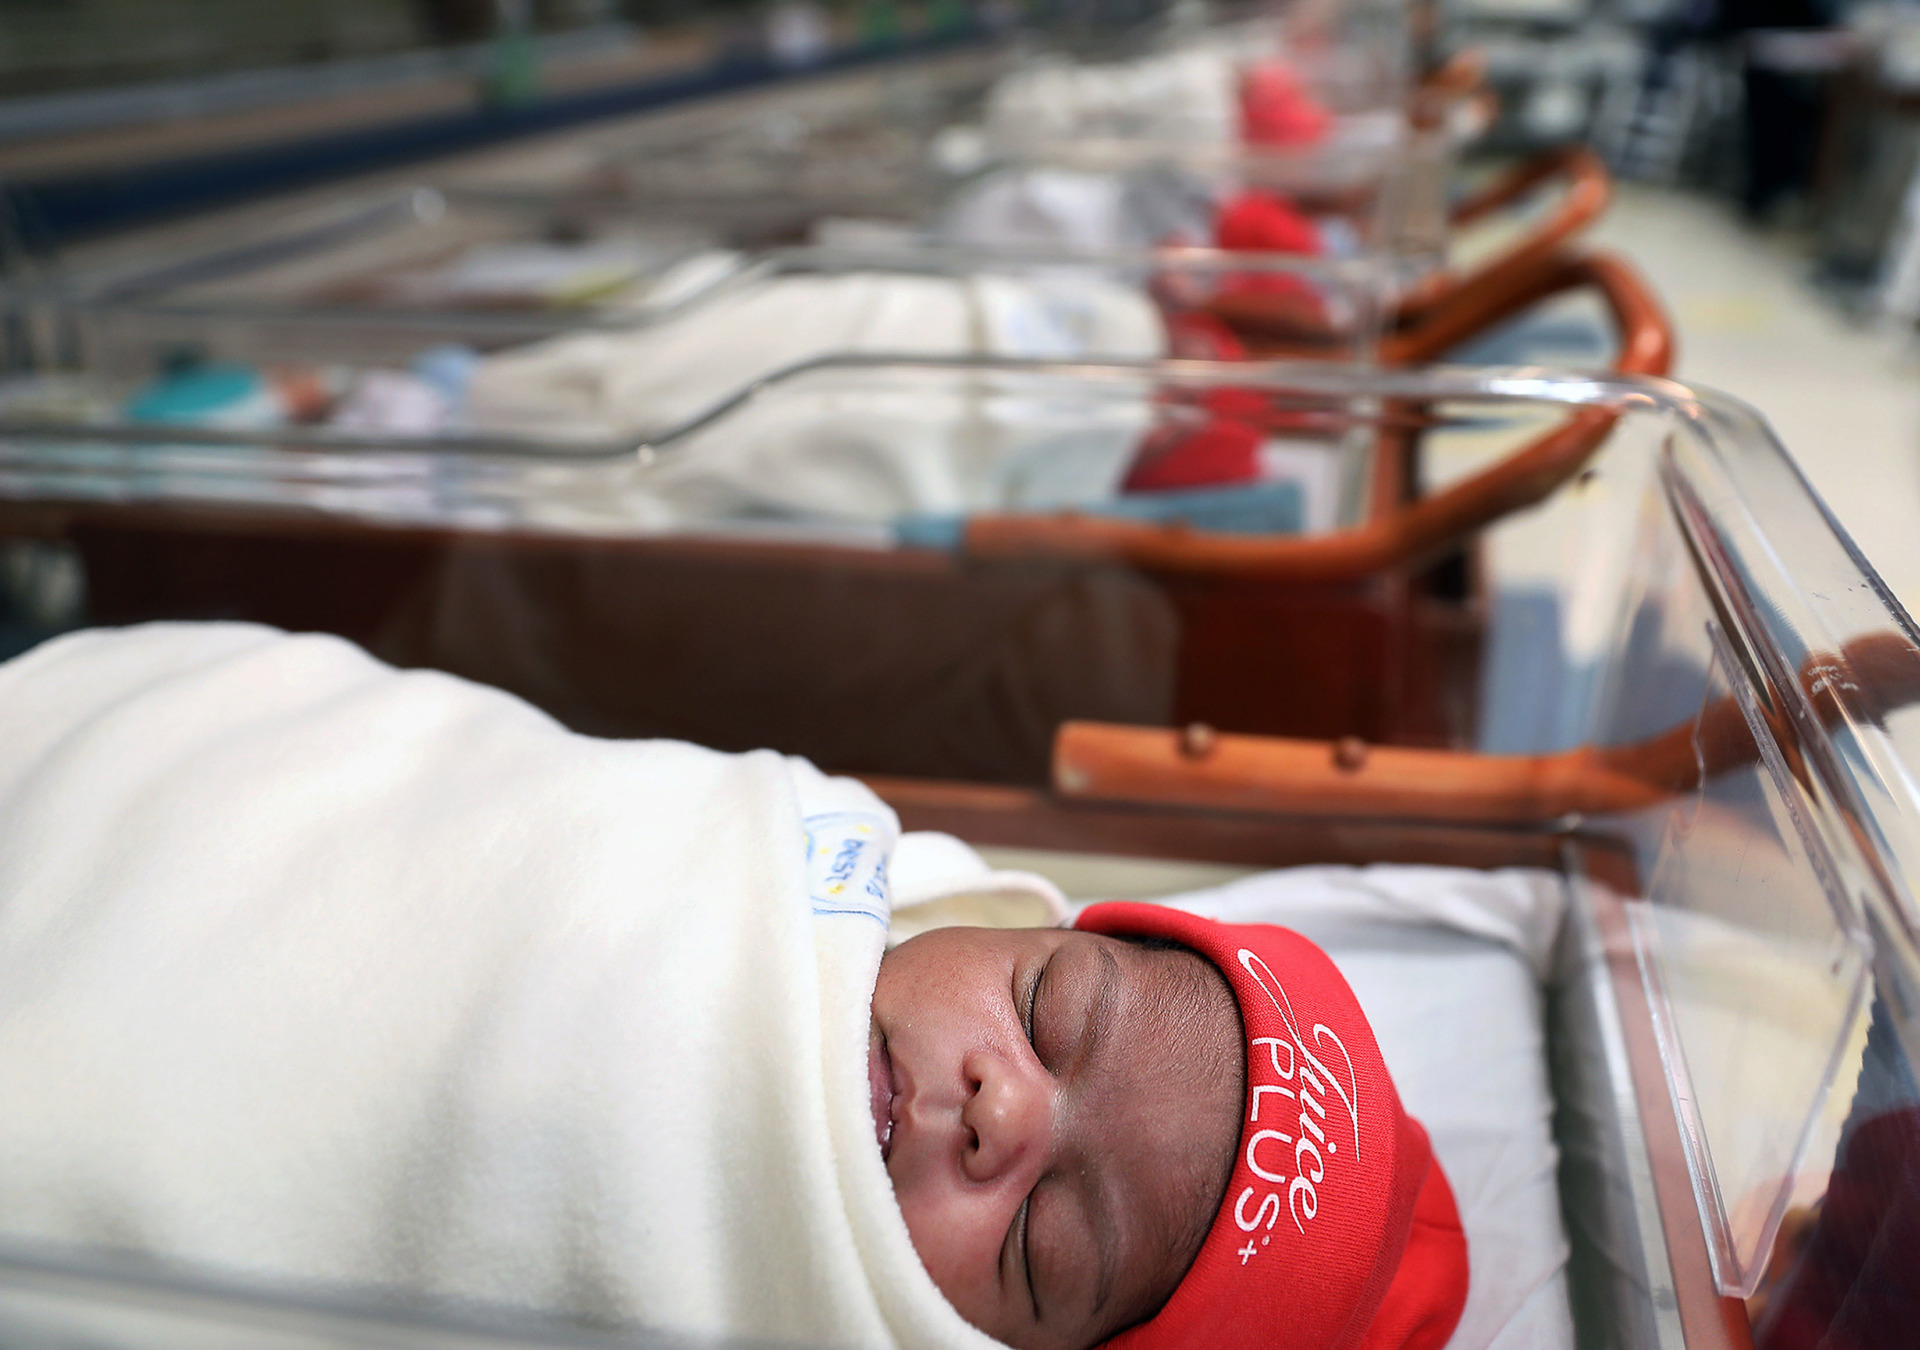 <strong>On Wednesday, Feb. 6, about a dozen newborn babies were lined up in the Baptist Memorial Hospital for Women&rsquo;s nursery window wearing red beanies. The red hats are part of an awareness campaign by the American Heart Association informing new parents that congenital heart defects are the most common type of birth defect, affecting about 40,000 births, or 1 in 100 newborns, each year.</strong> (Patrick Lantrip/Daily Memphian)